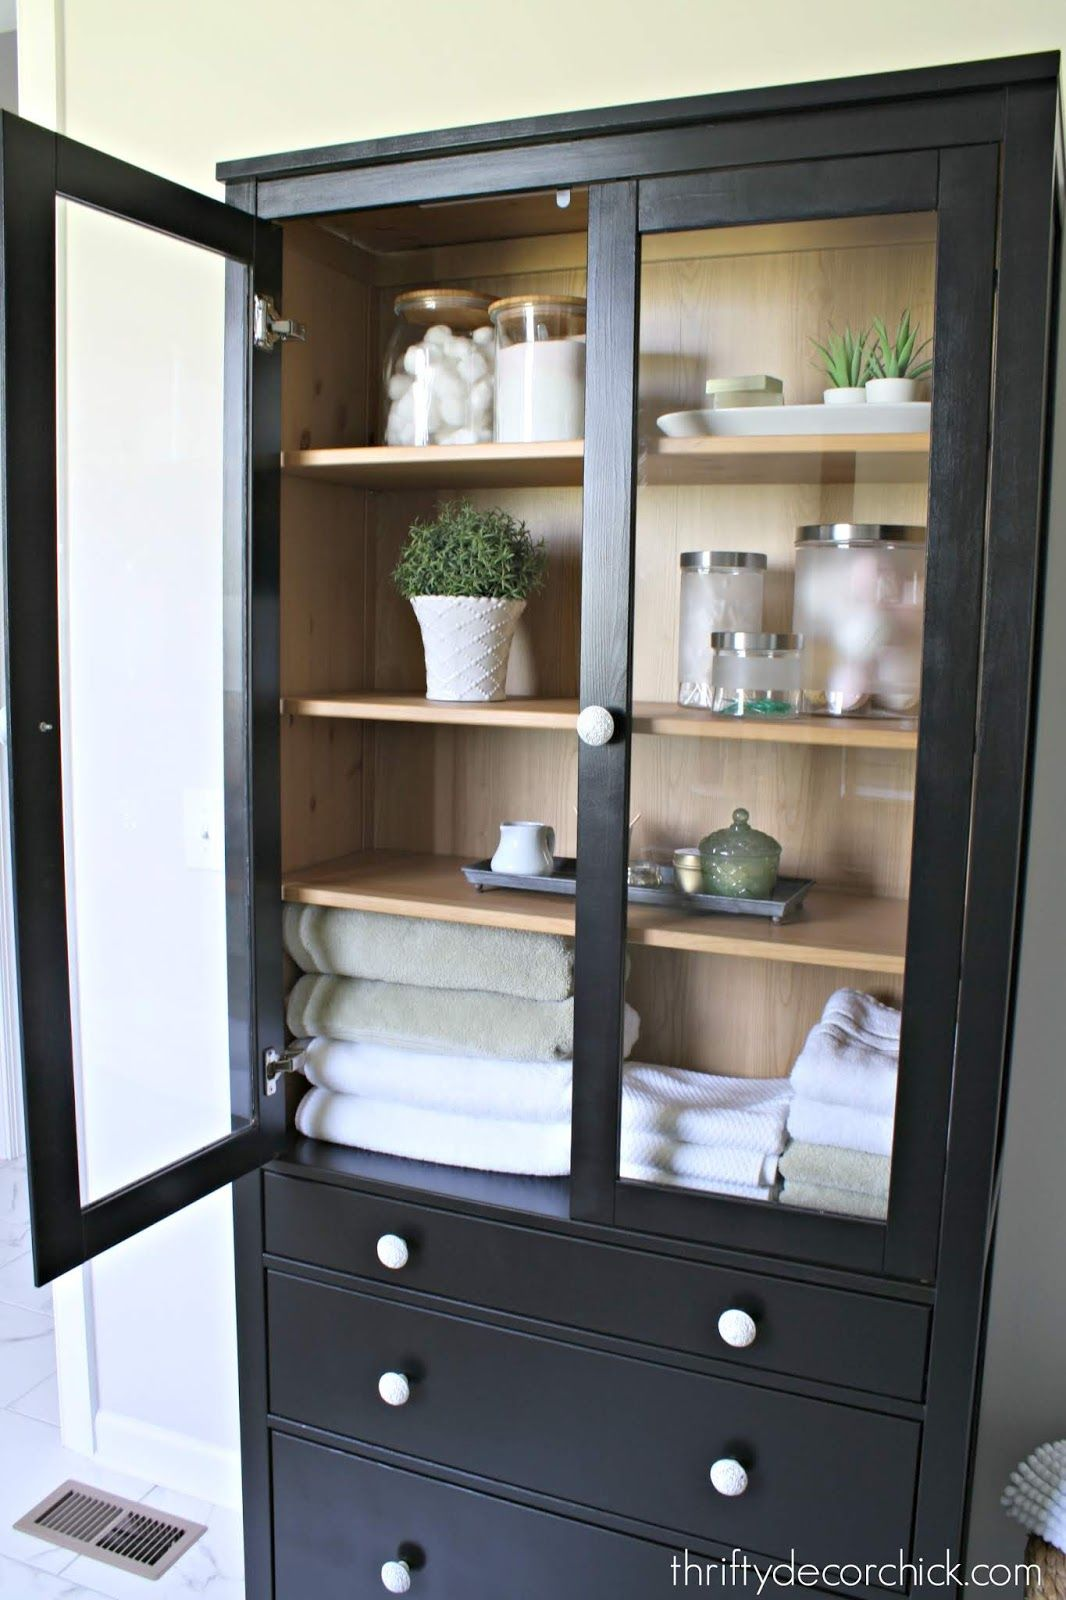 My Favorite Ikea Pieces And How We Use Them Glass Cabinet Glass Kitchen Cabinet Doors Ikea Hemnes Cabinet [ jpg ]